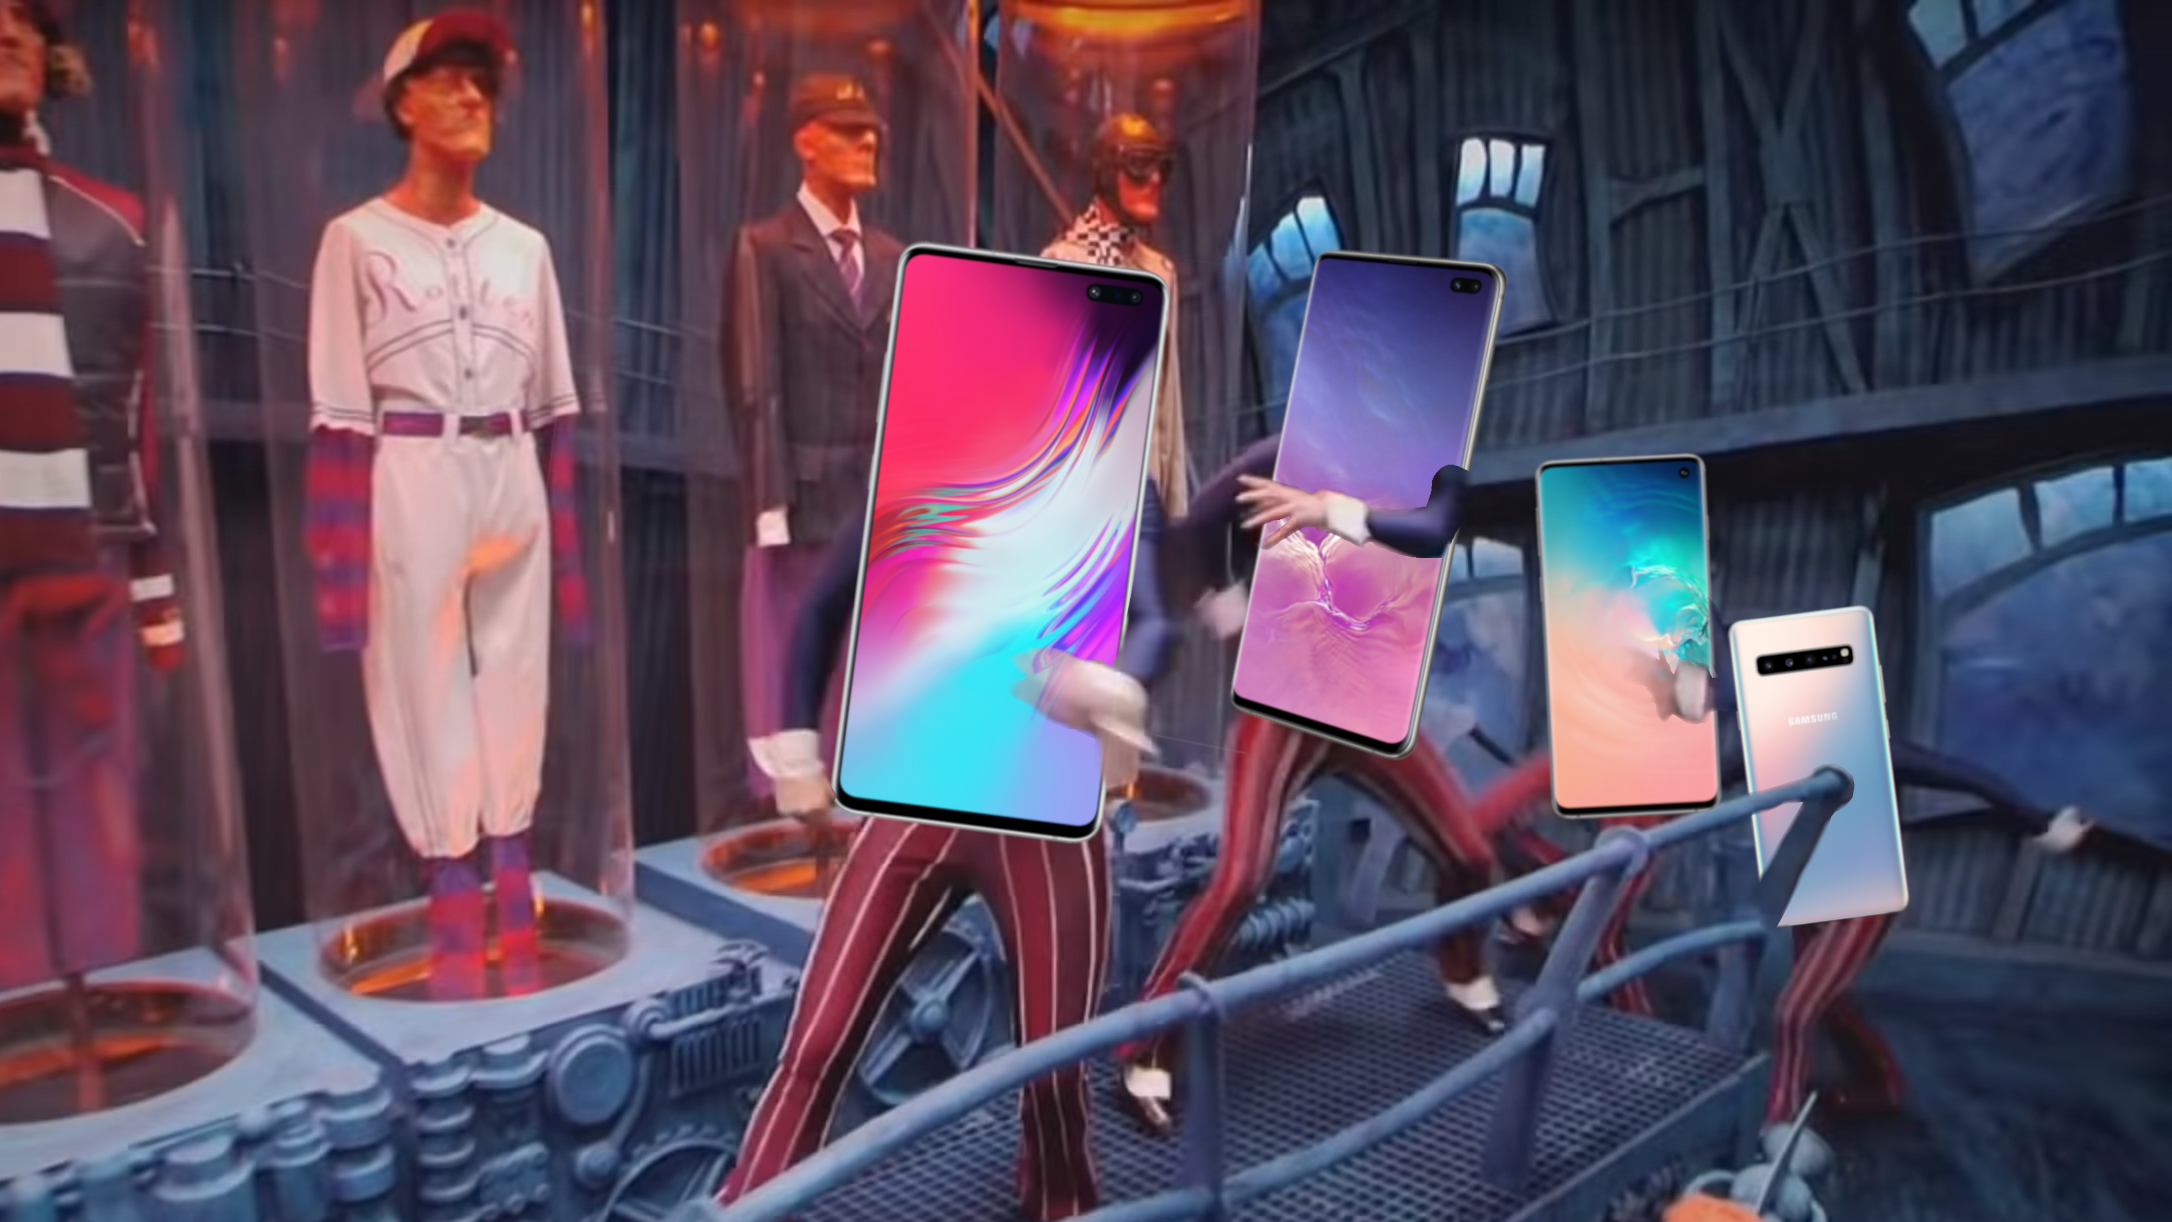 Samsung's official Galaxy S10 wallpapers all try really hard to hide the notch